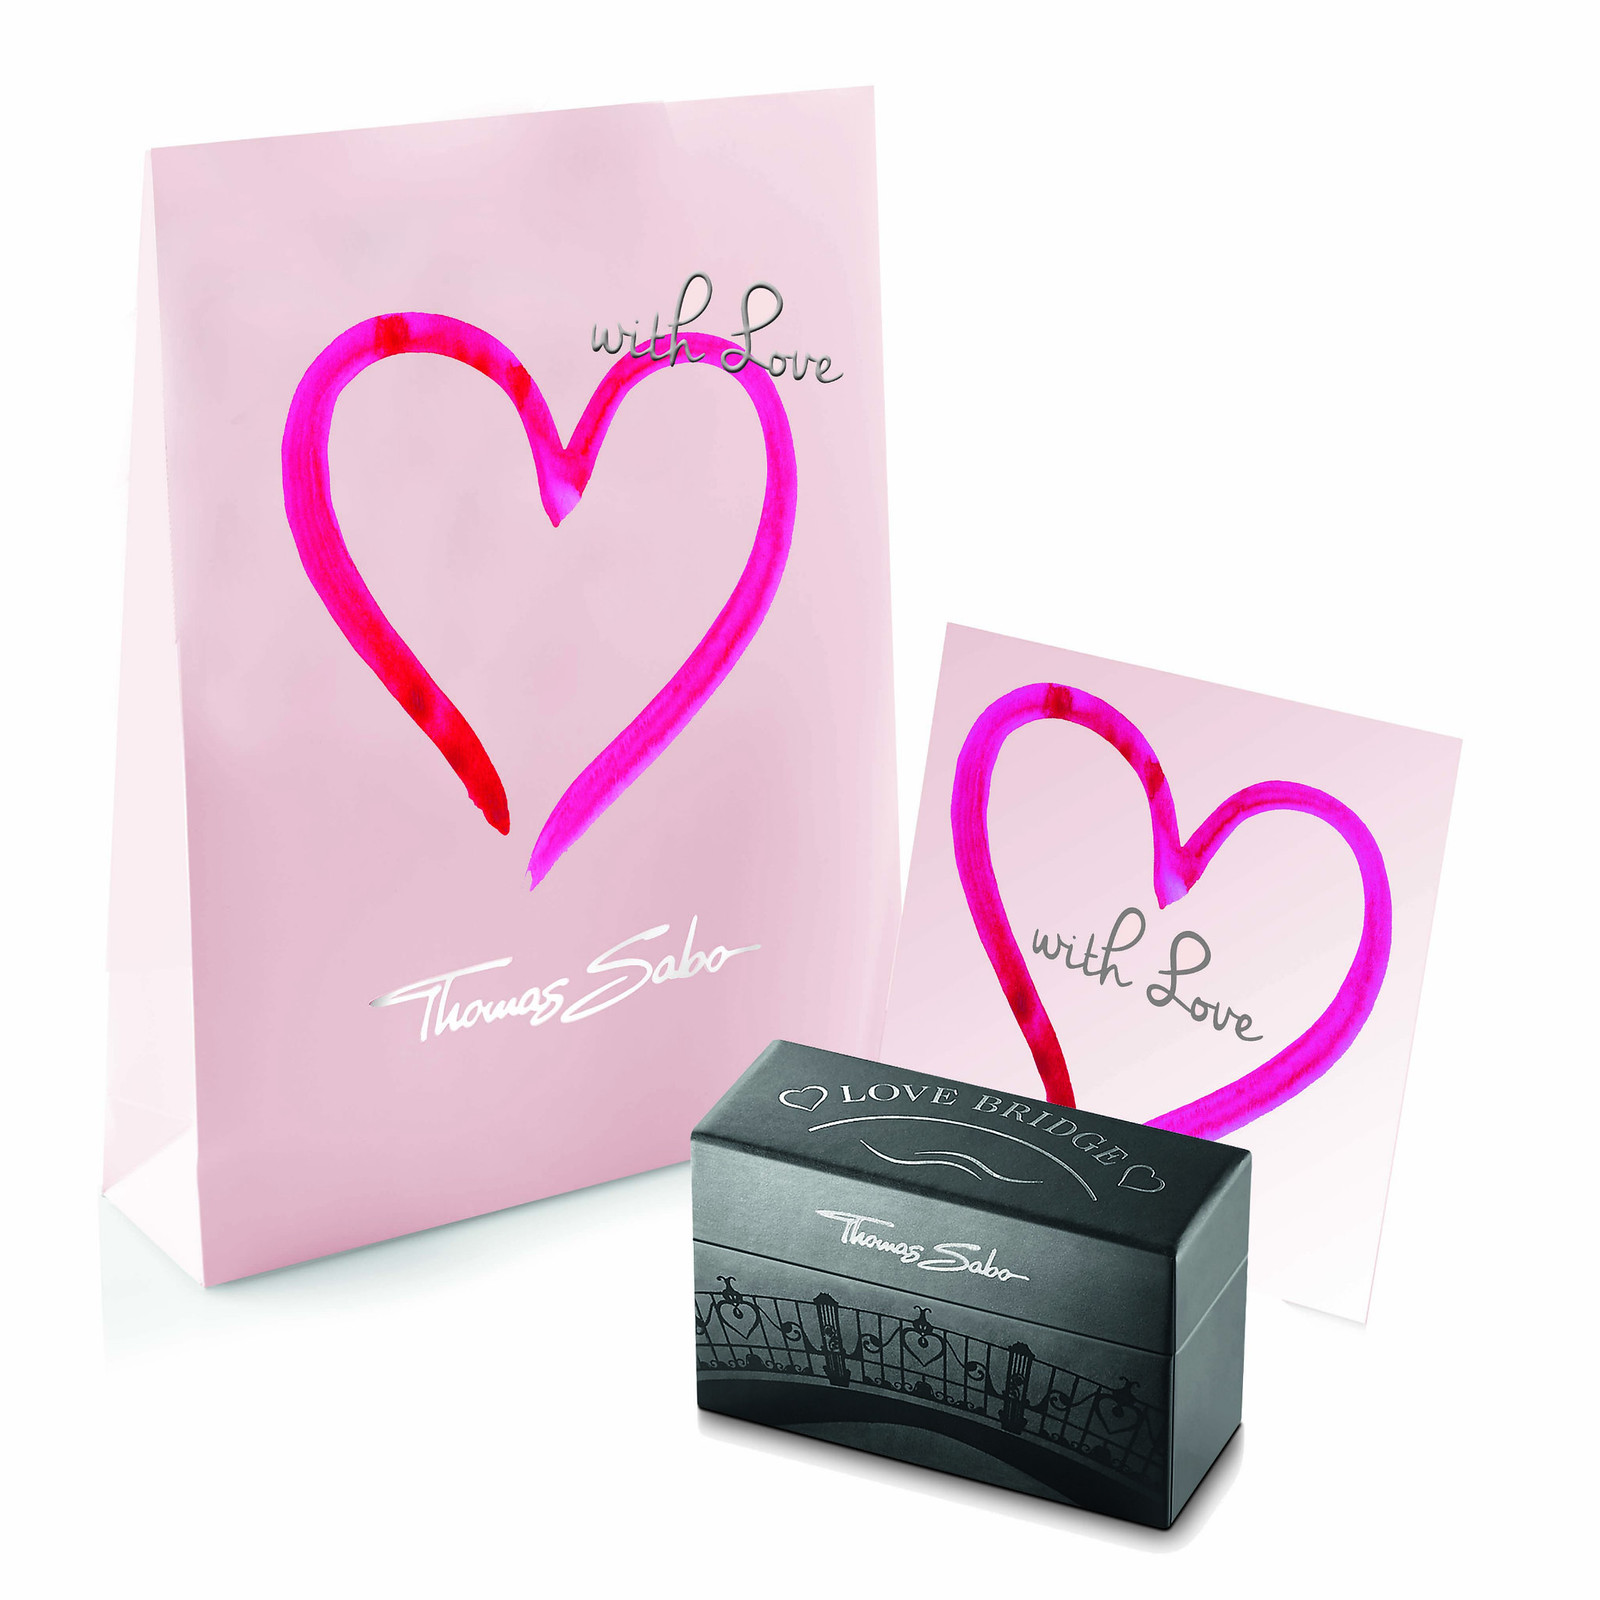 THOMAS SABO_Sterling Silver_SS2016_Love Bridge Still_Packaging